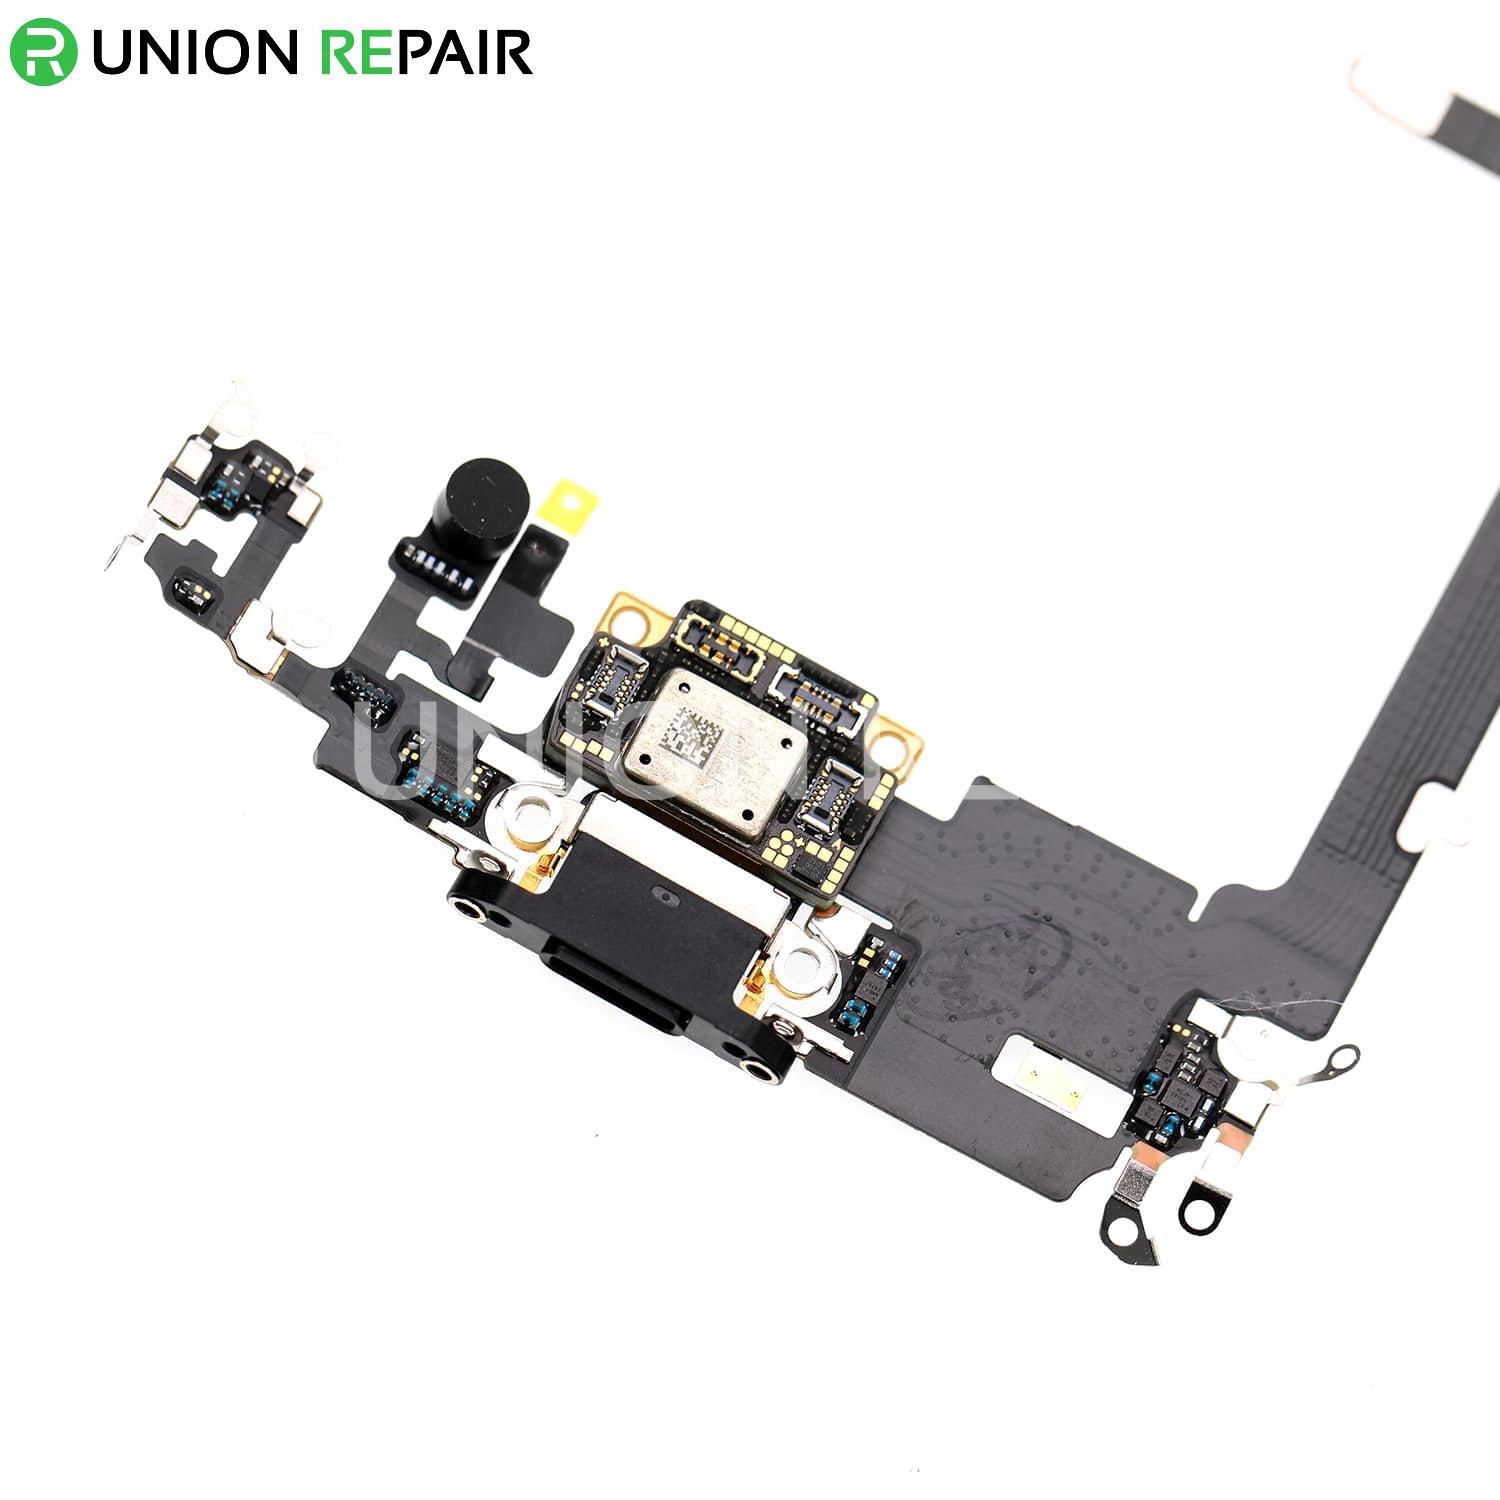 Replacement for iPhone 11 Pro Charging Connector Assembly - Space Gray